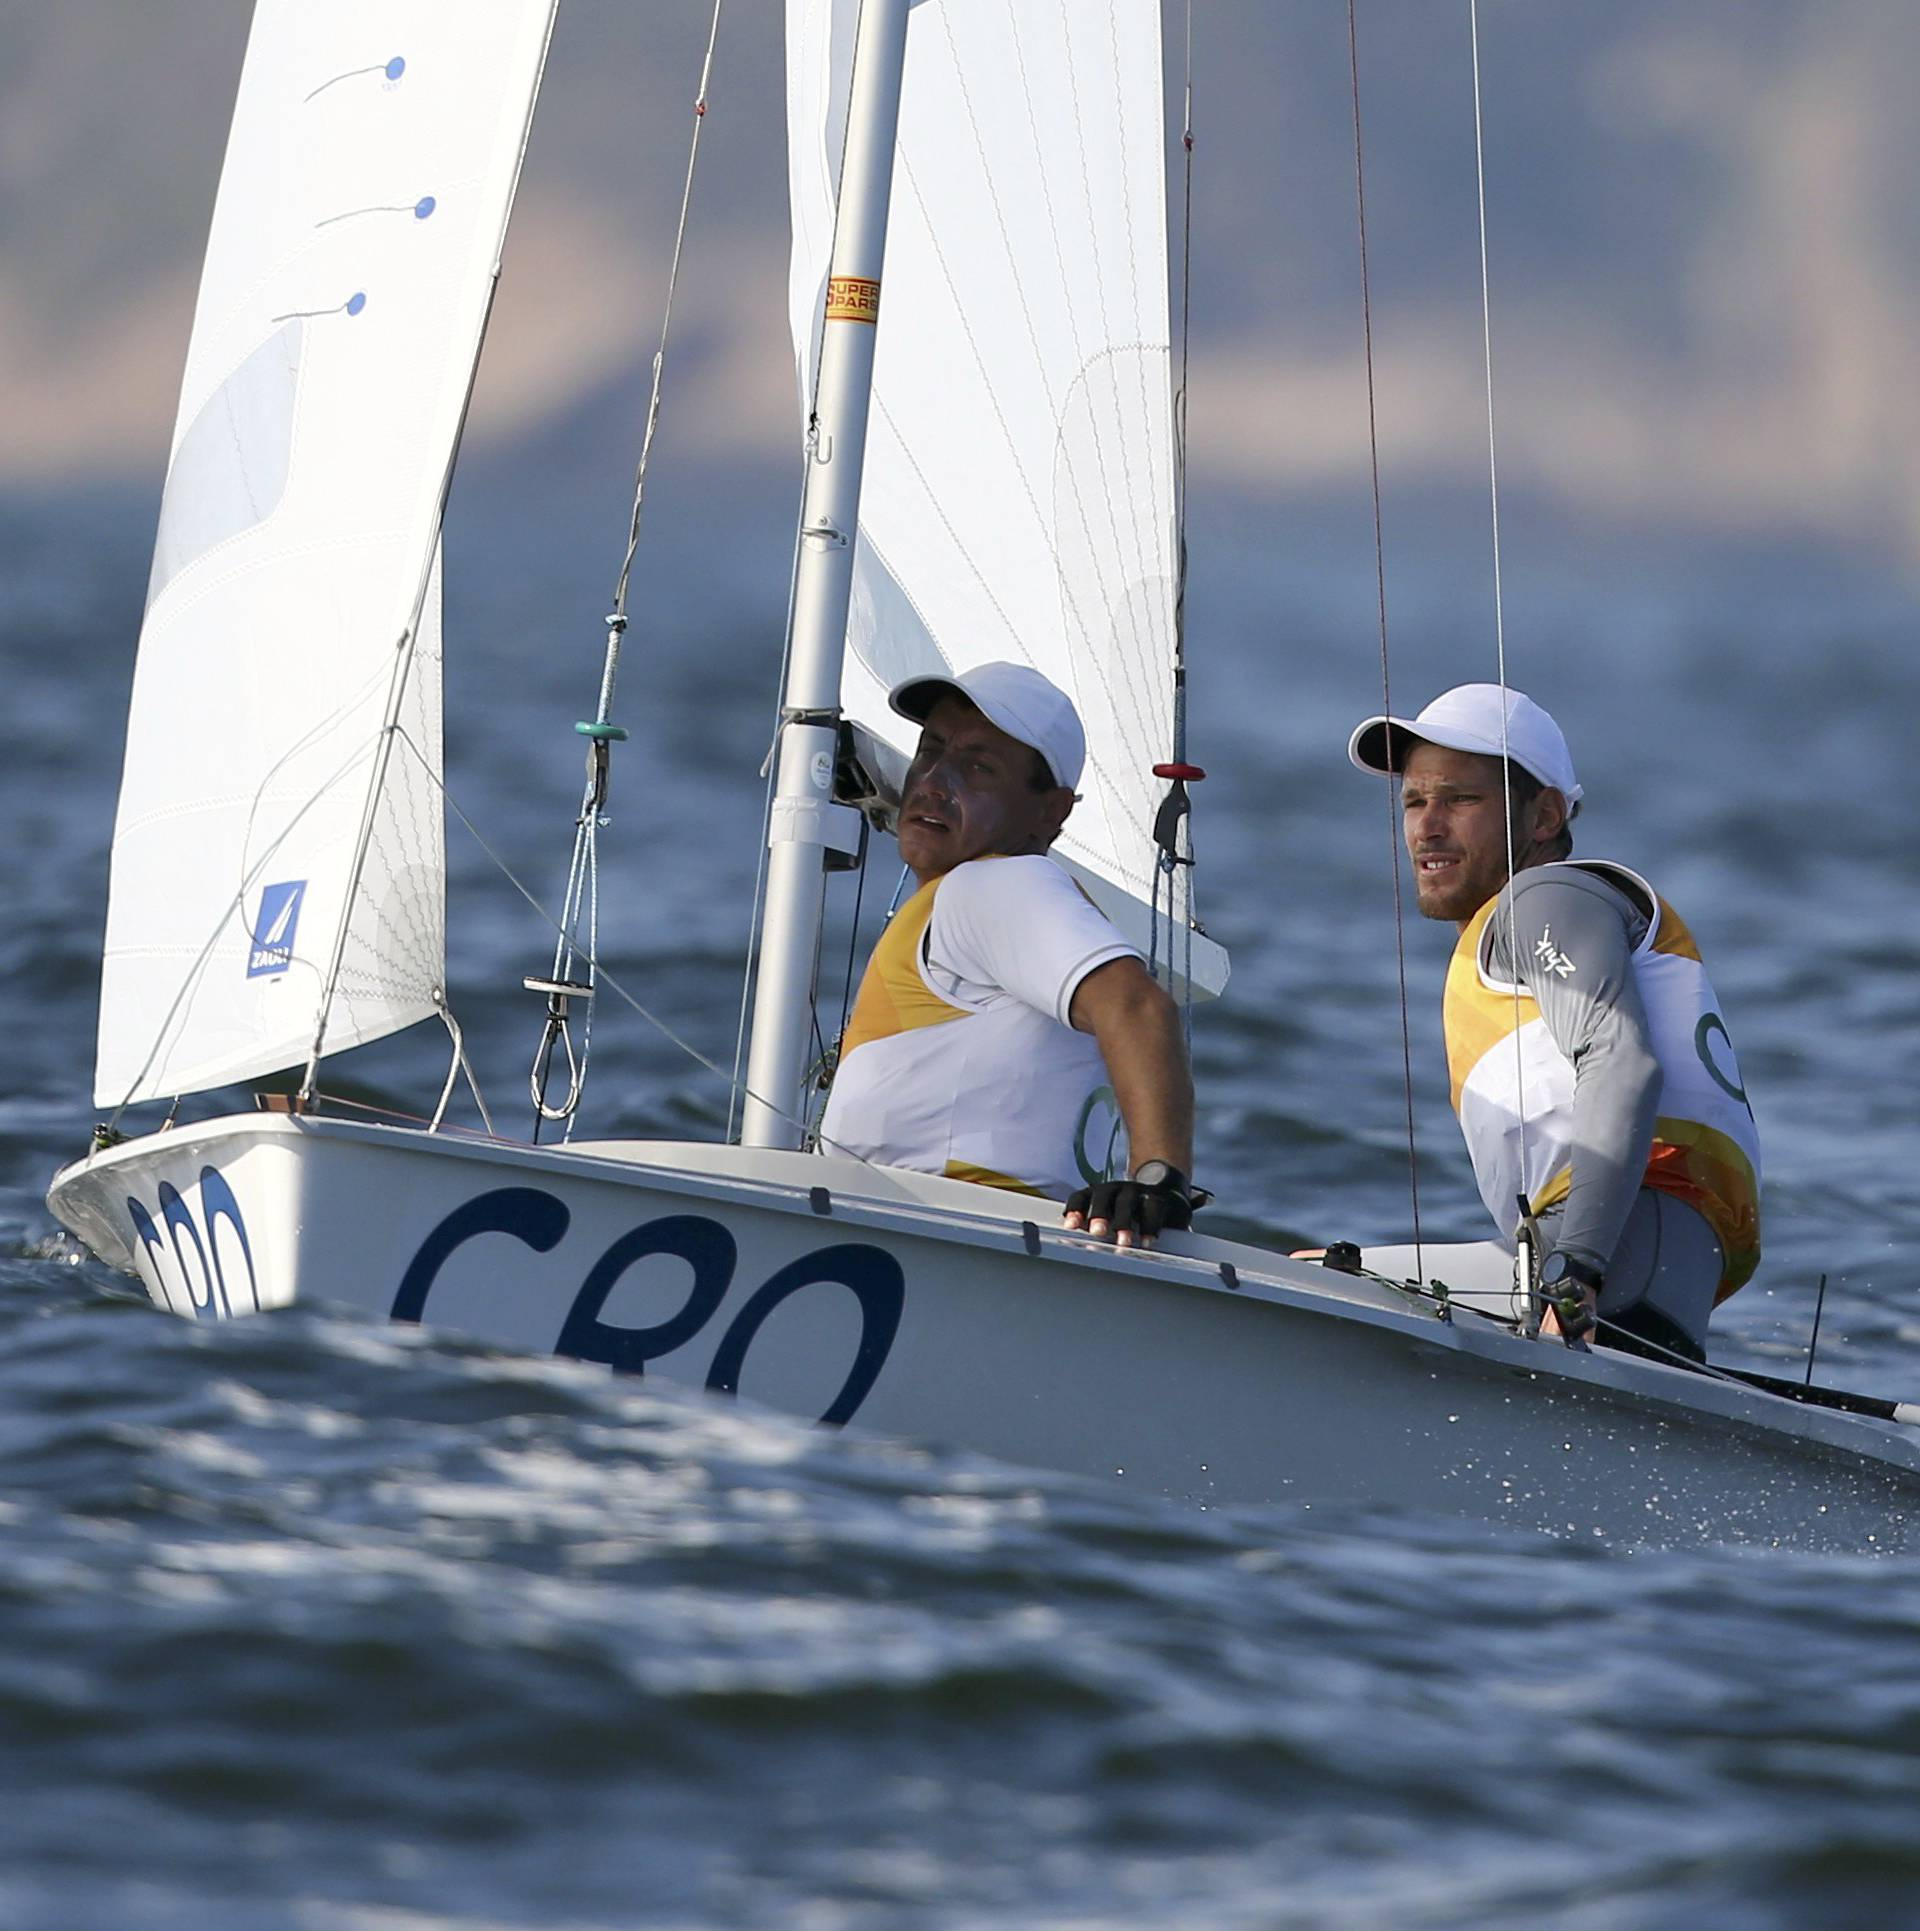 Sailing - Men's Two Person Dinghy - 470 - Race 6/7/8